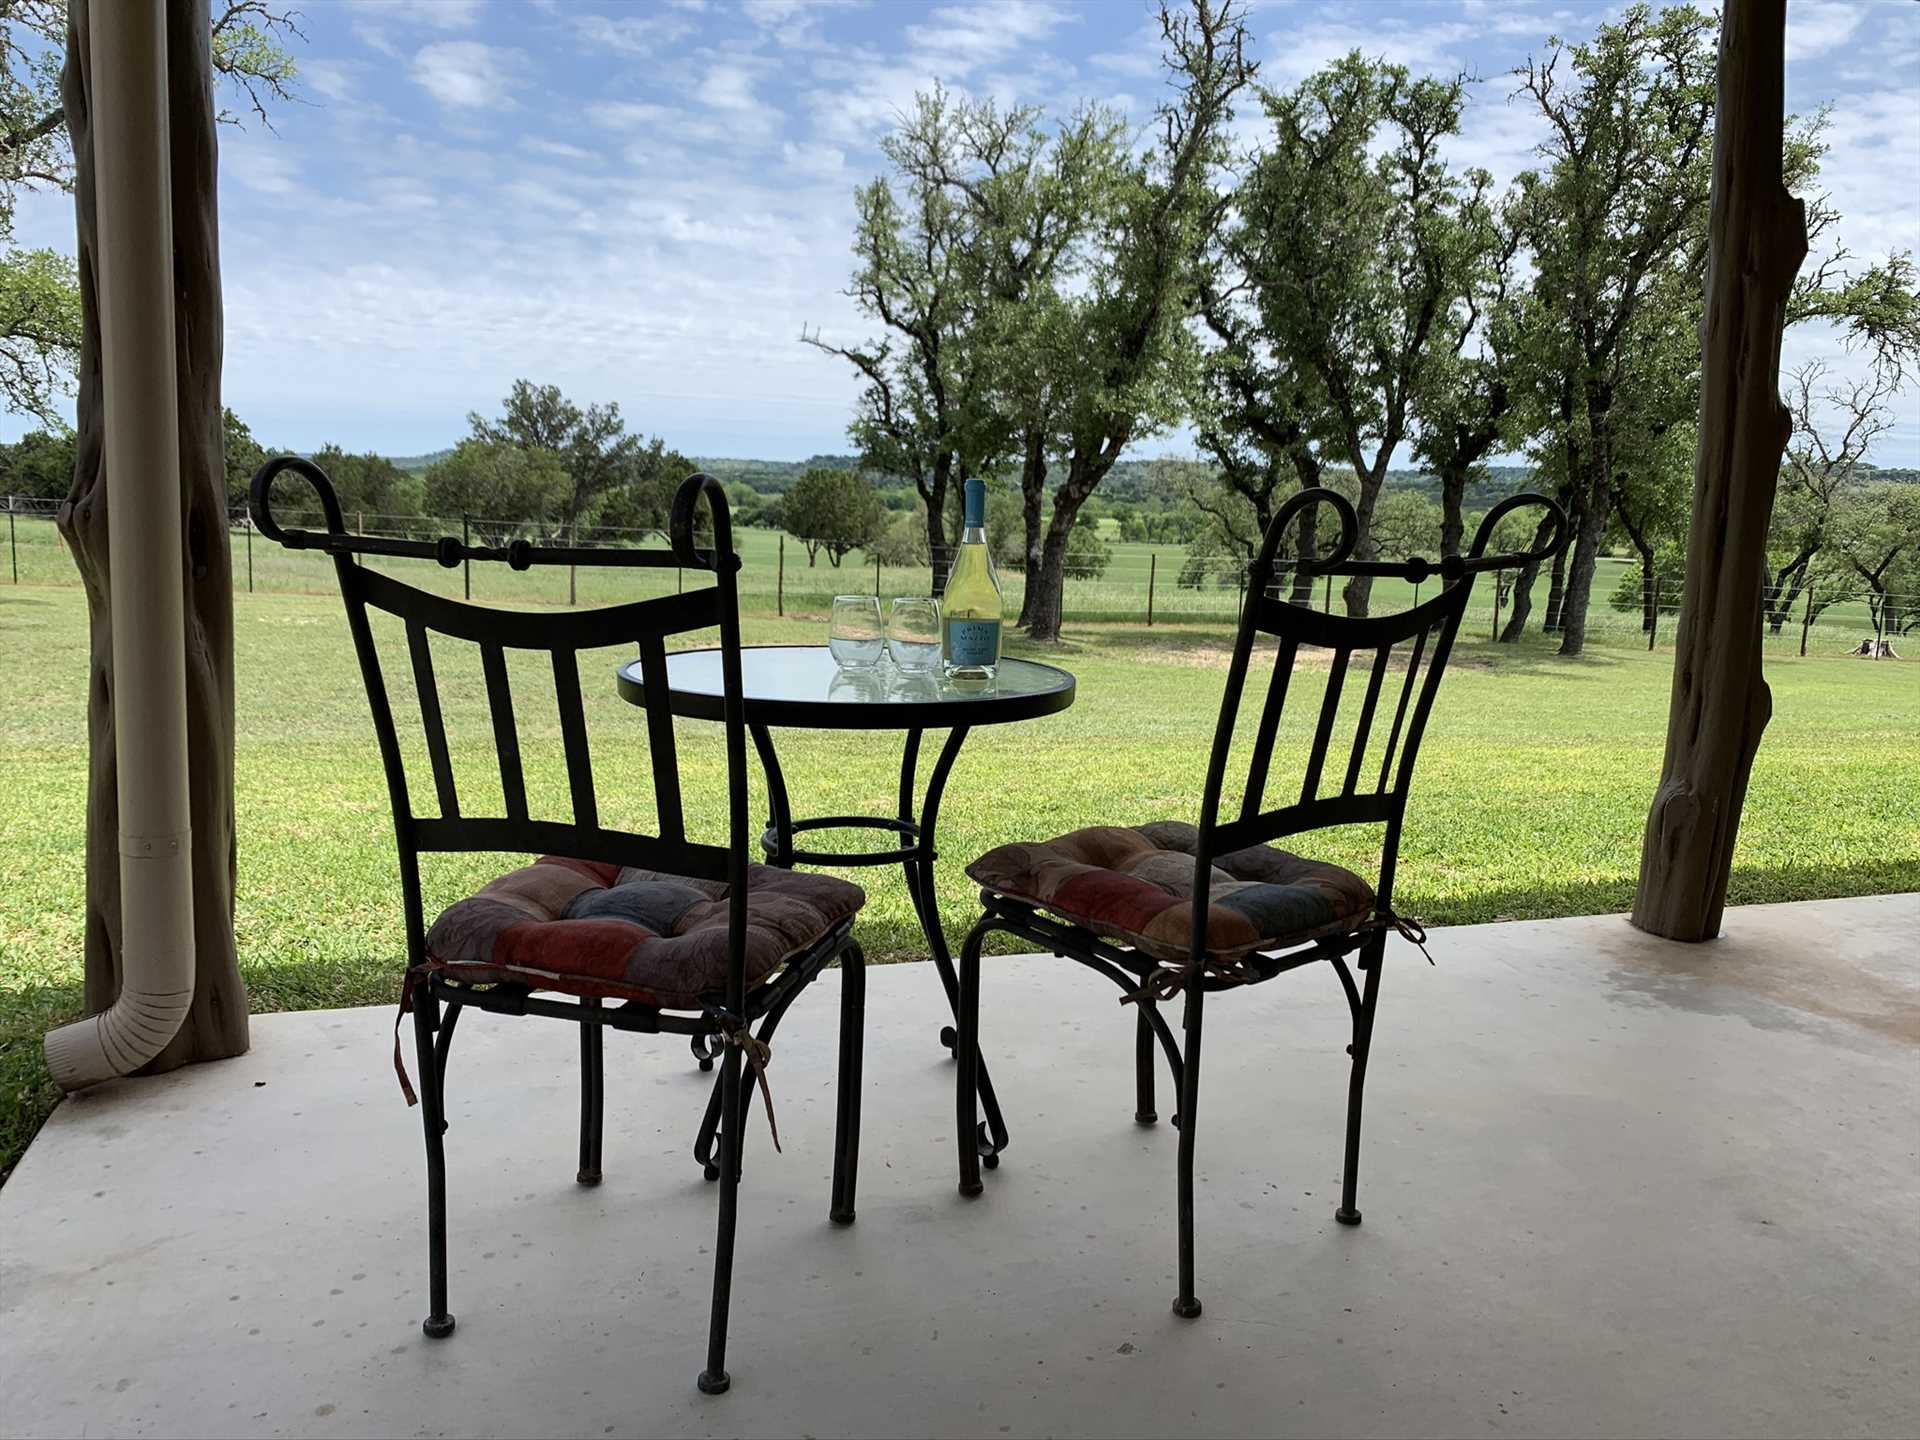 You're welcome to hike the grounds, of course-but you won't even need to leave the patio for beautiful Hill Country views!